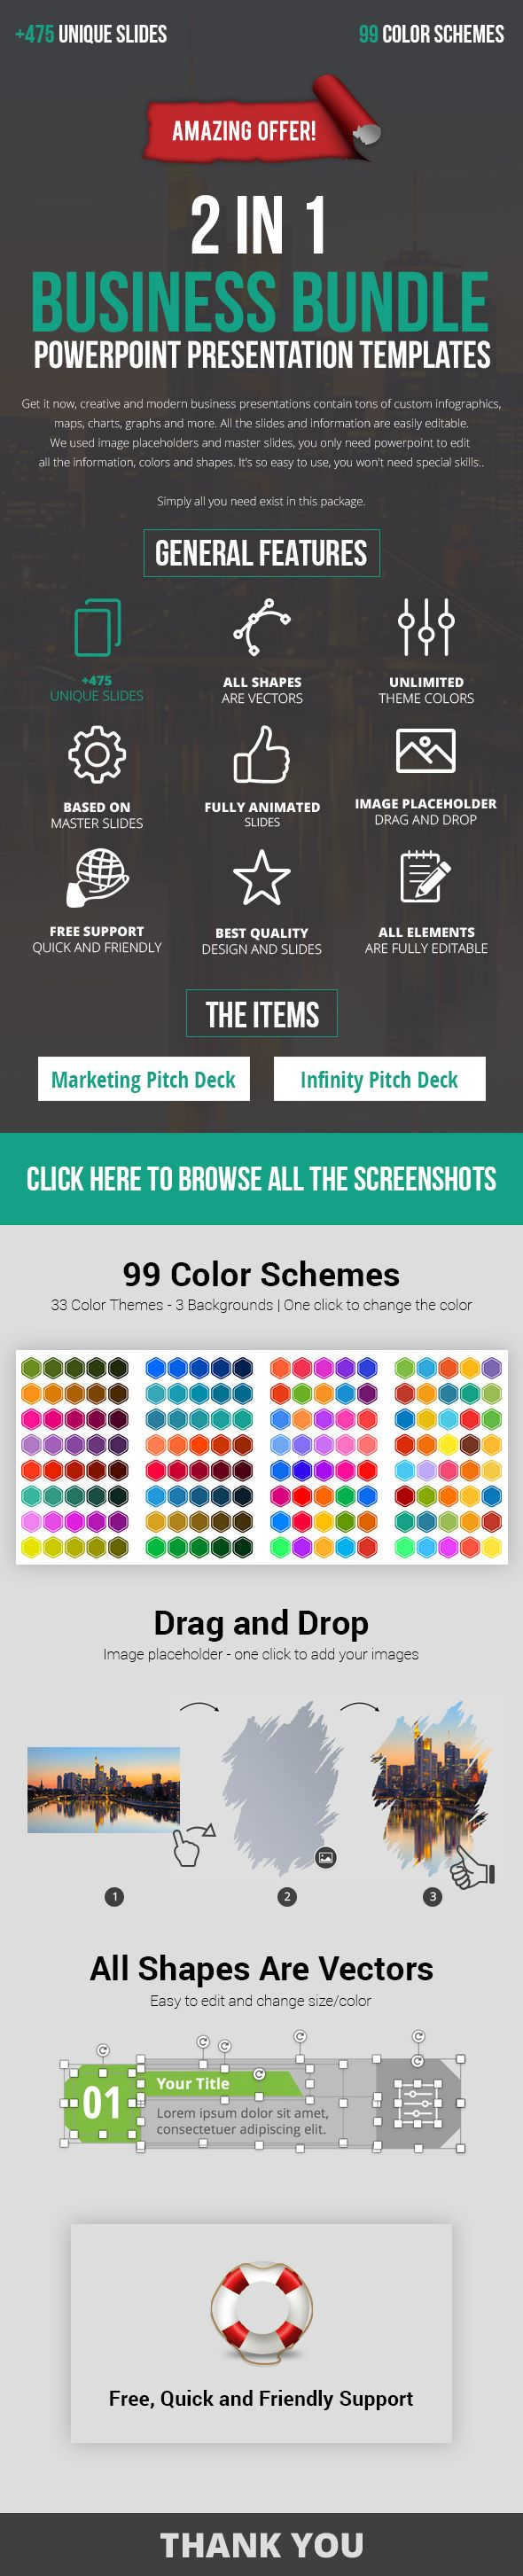 2 in 1 Great PowerPoint Pitch Deck Bundle 2017 - #Business #PowerPoint #Templates Download here: https://graphicriver.net/item/2-in-1-great-powerpoint-pitch-deck-bundle-2017/19550290?ref=alena994